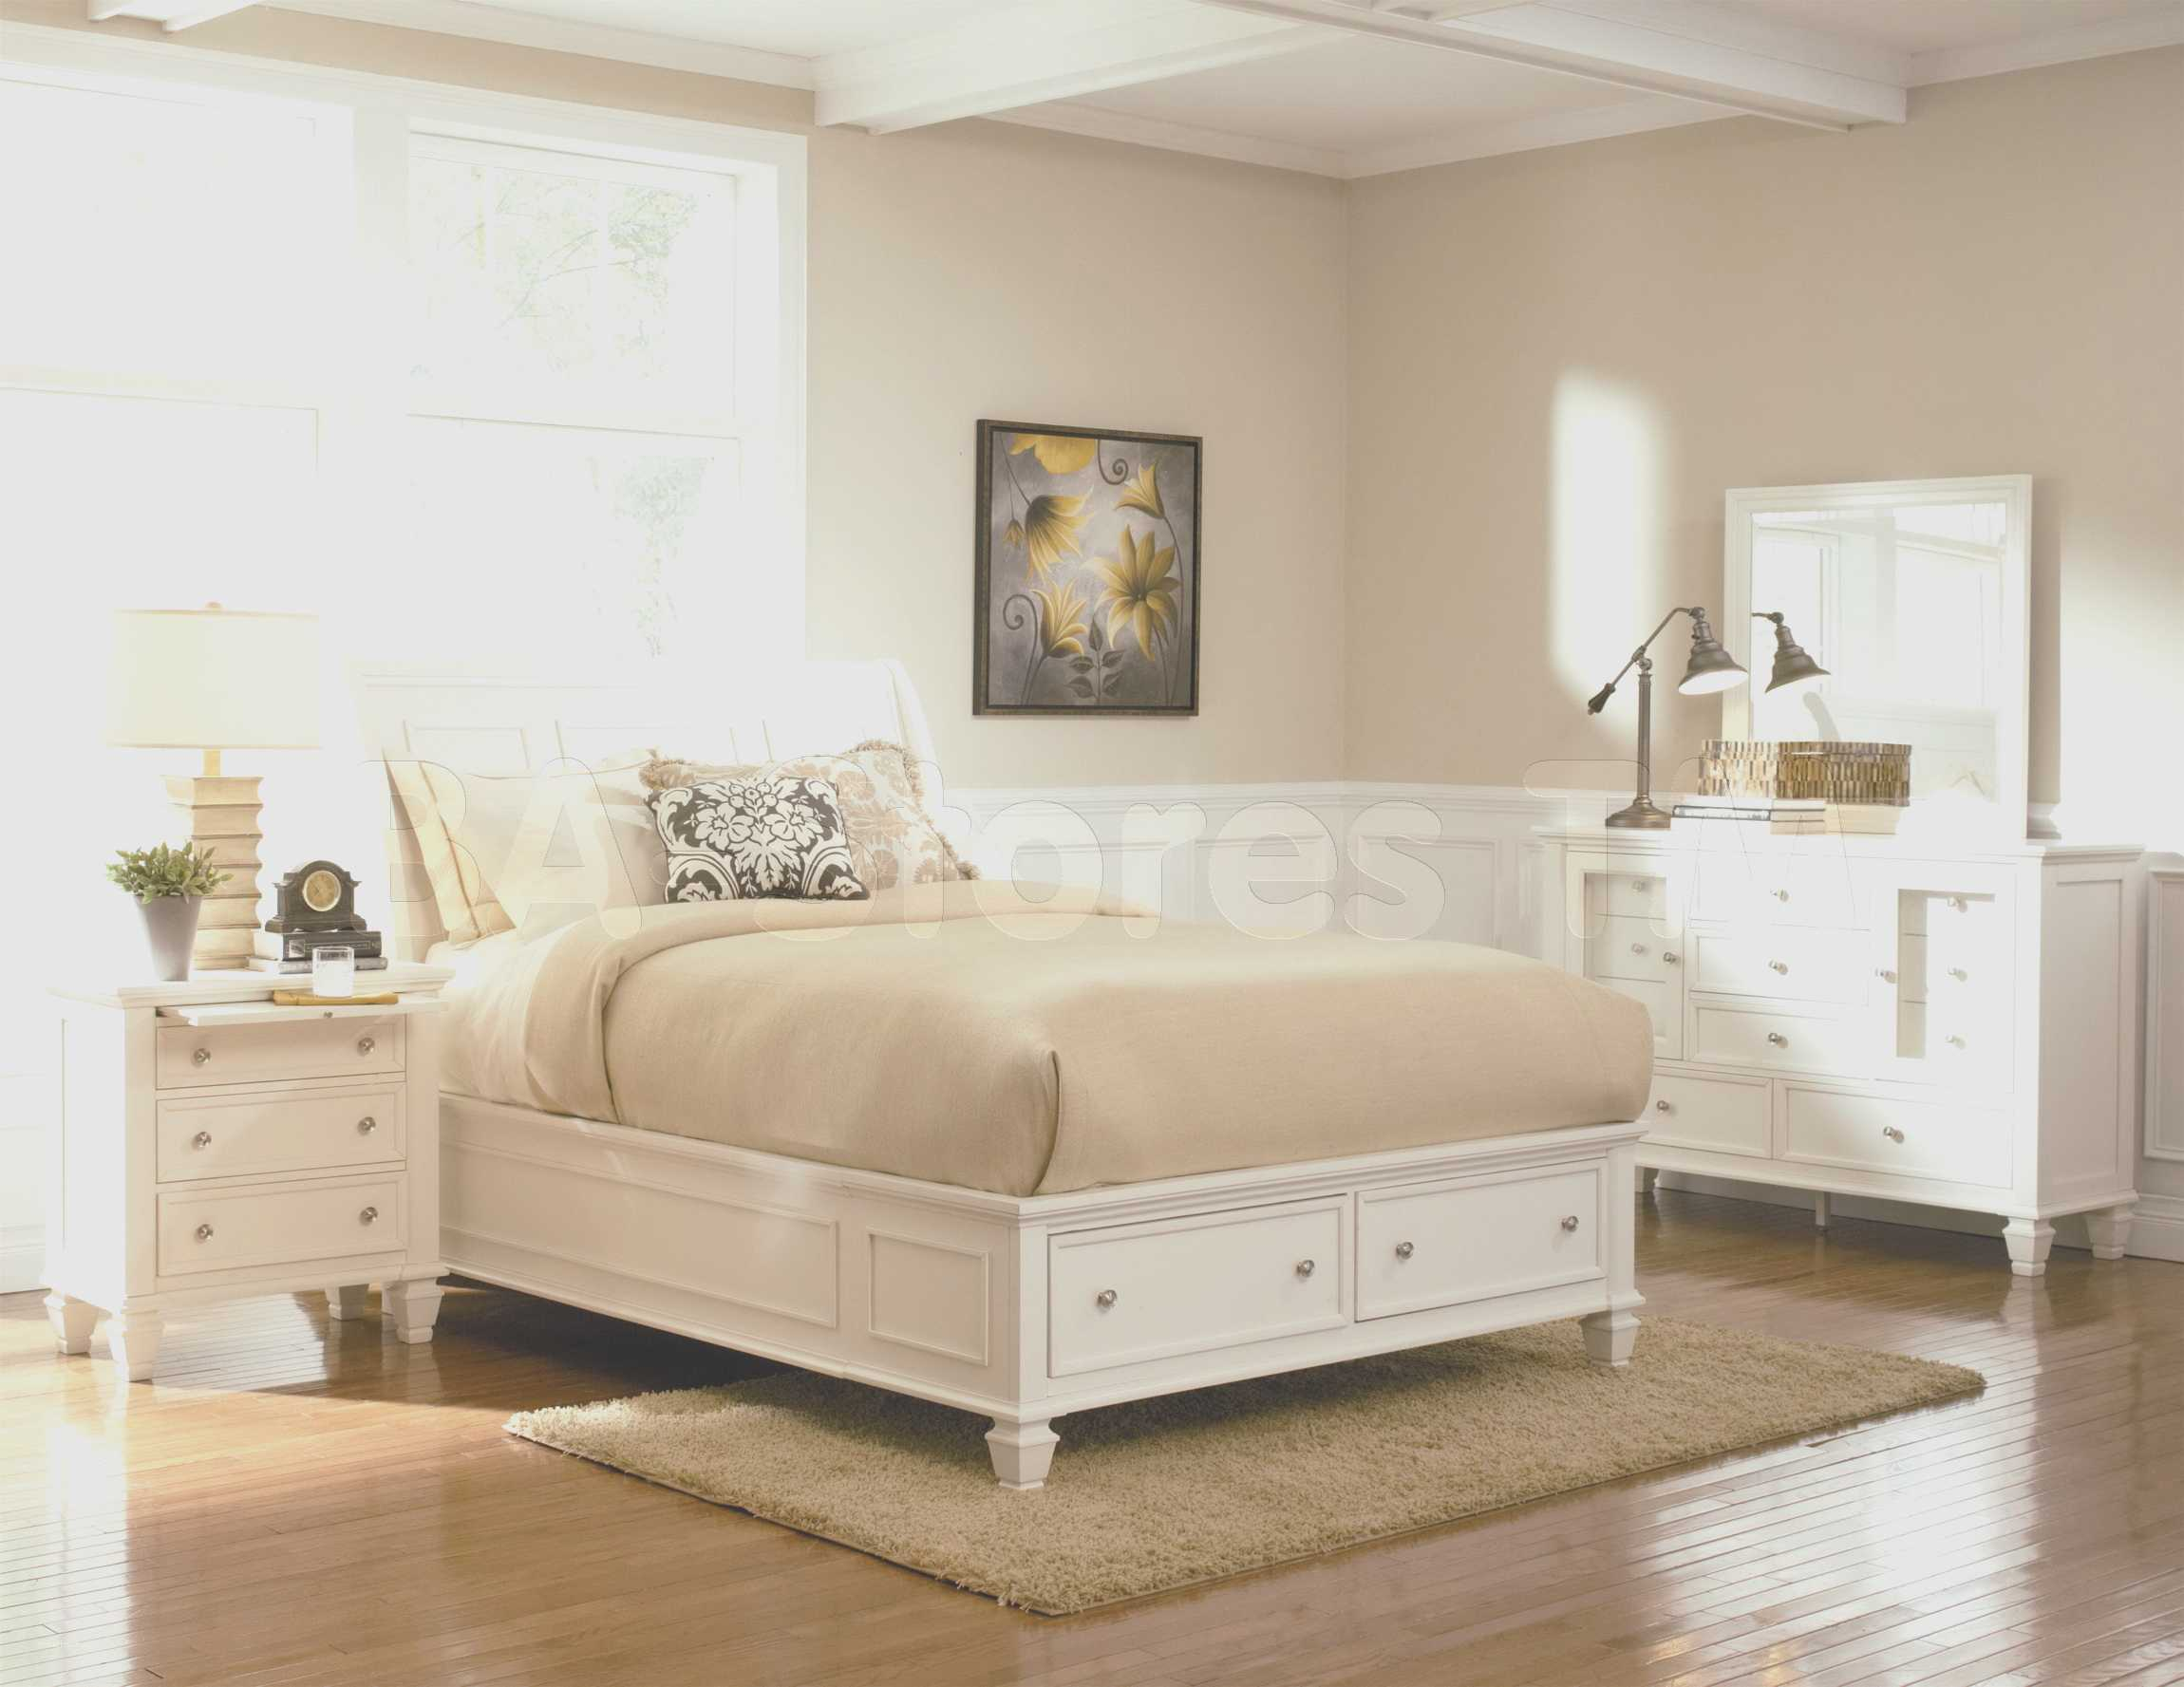 blue and white bedroom furniture photo - 8